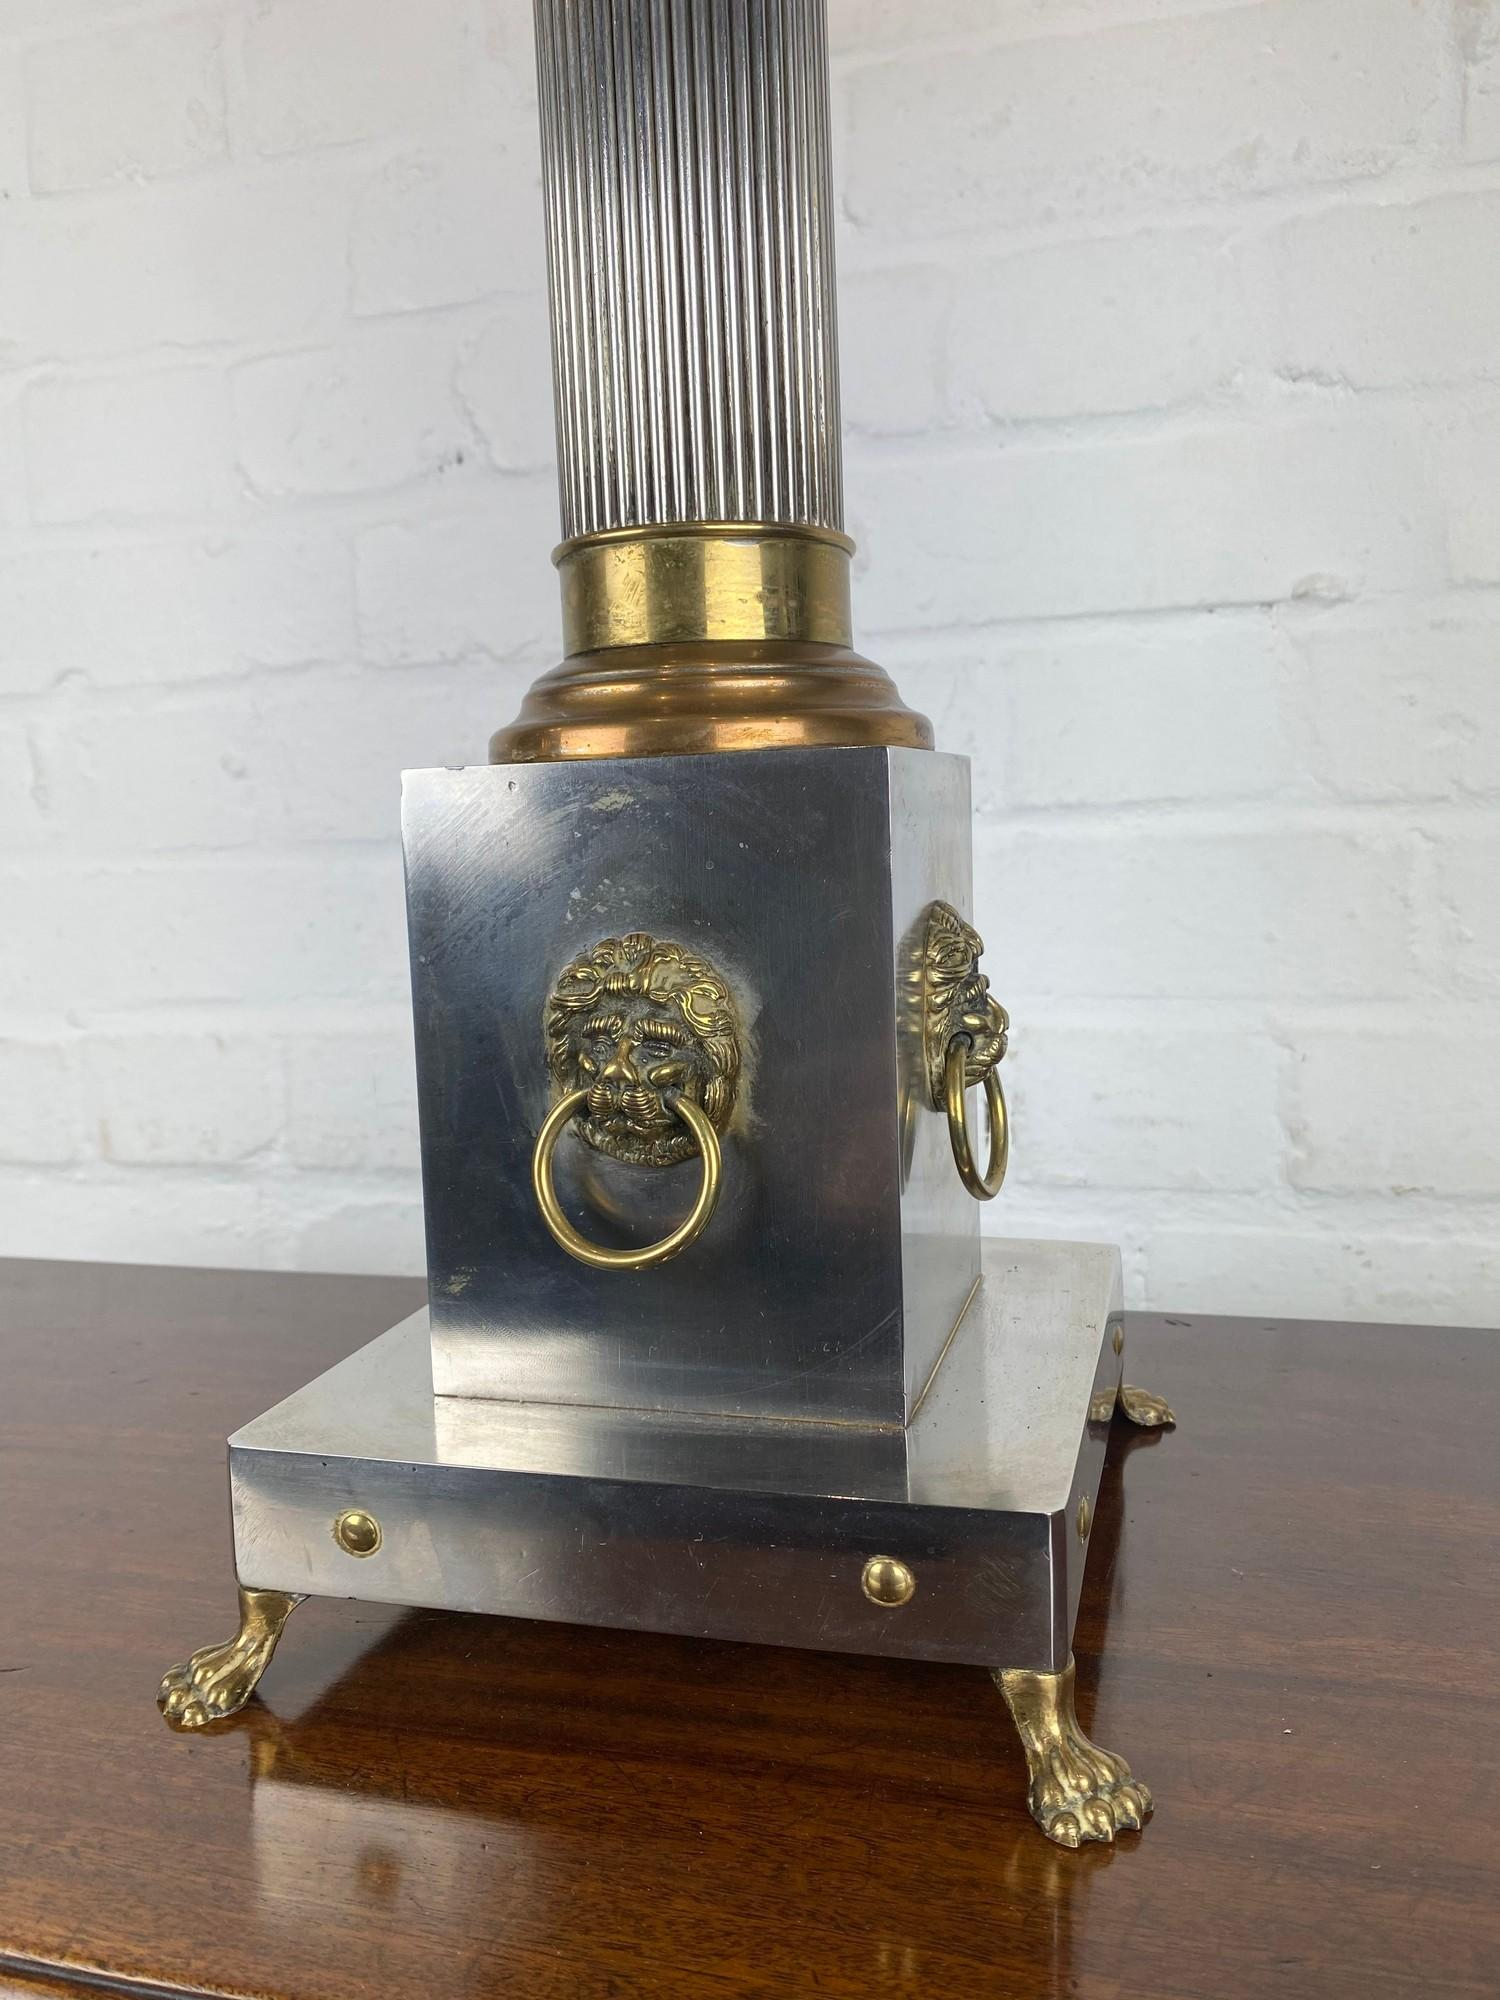 COLUMN HALL LAMP, early 20th century English silver plate, copper and brass four branch, with lion - Image 4 of 8